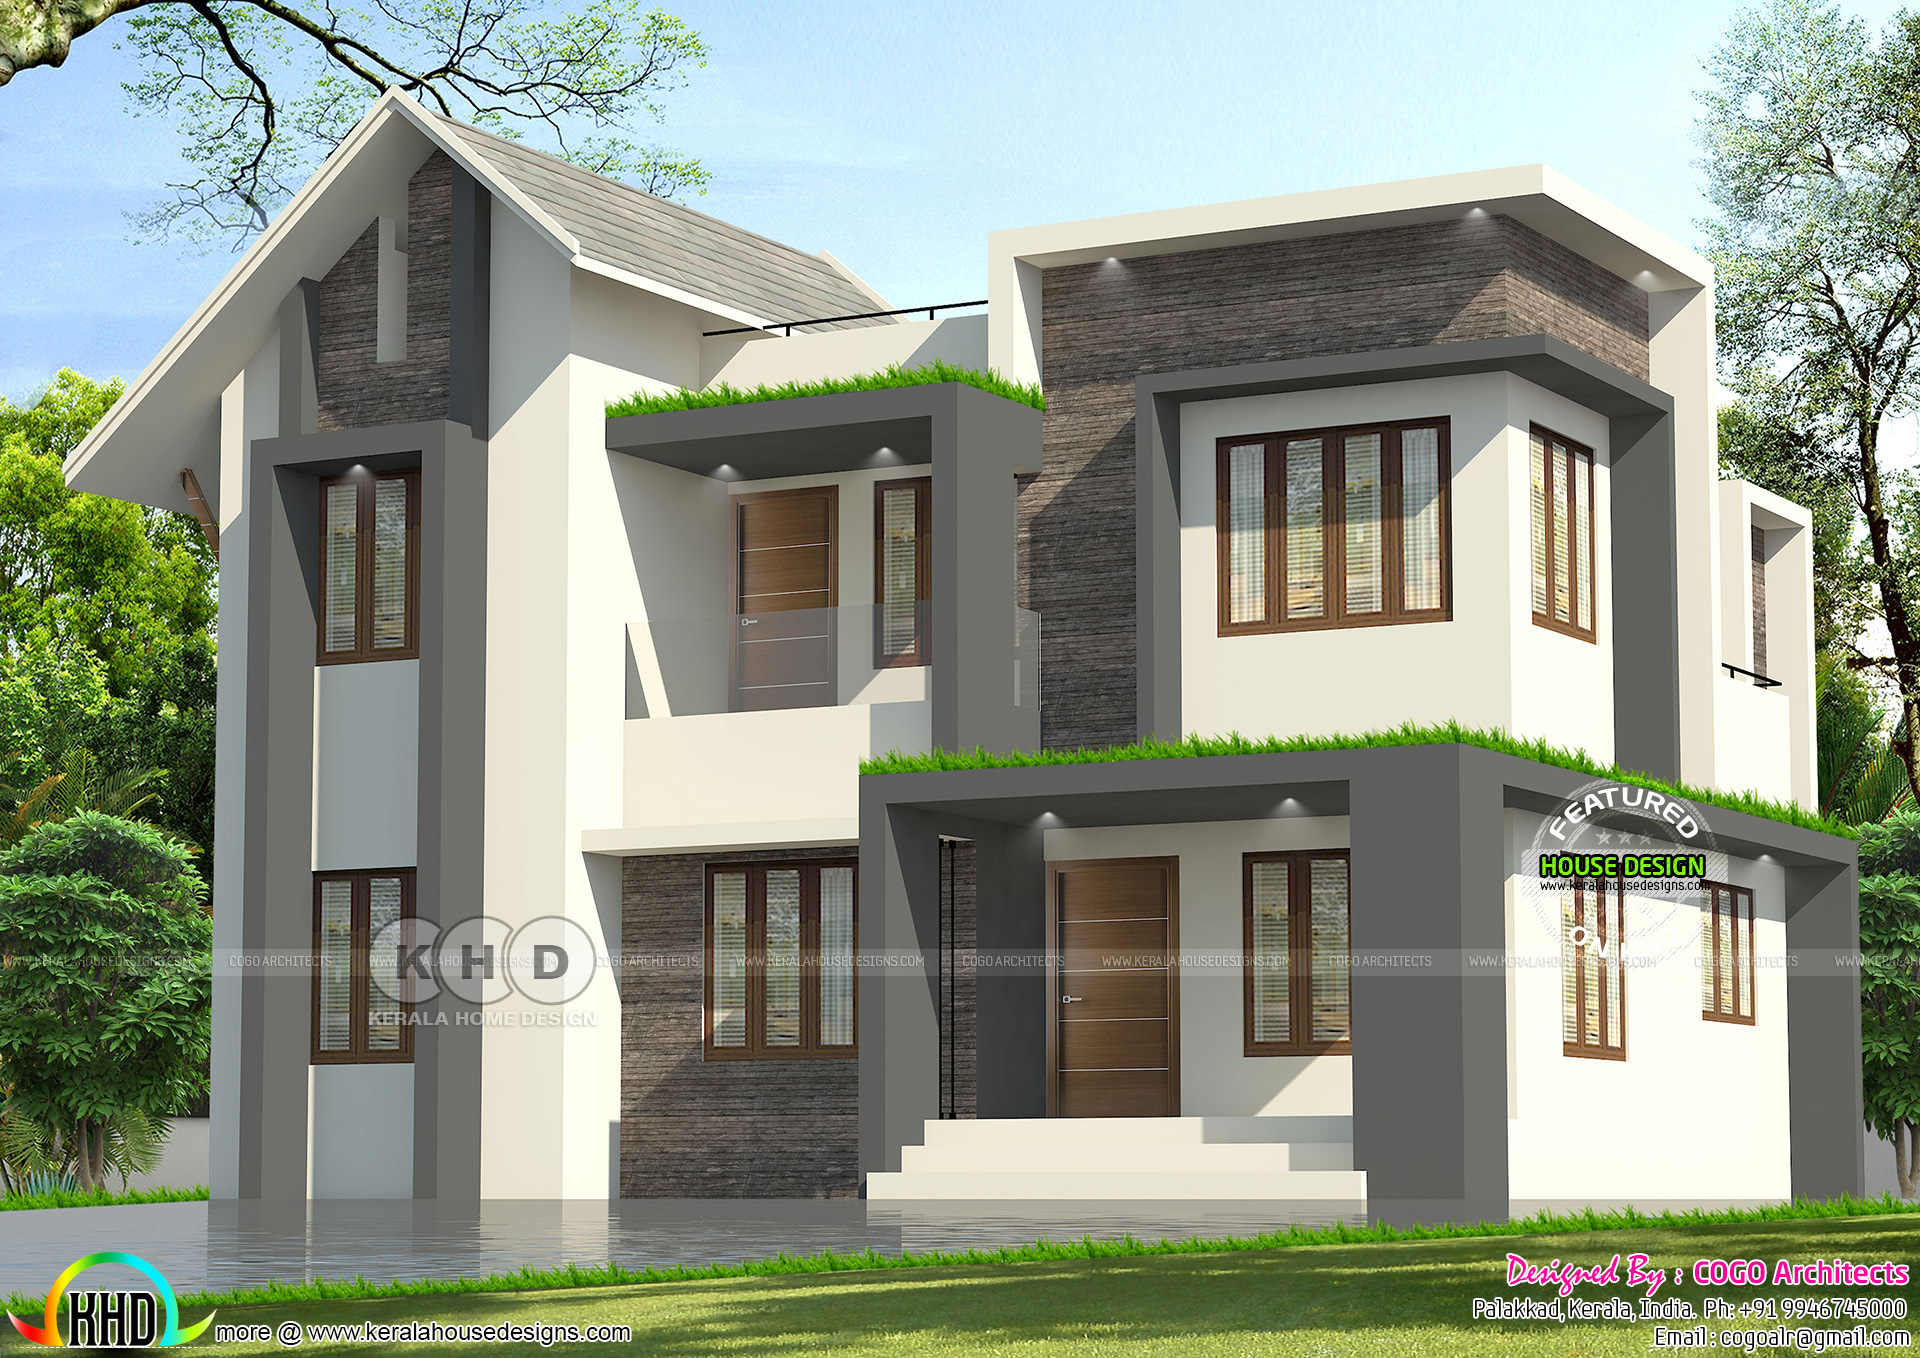 2019 Kerala Home Design And Floor Plans 8000 Houses